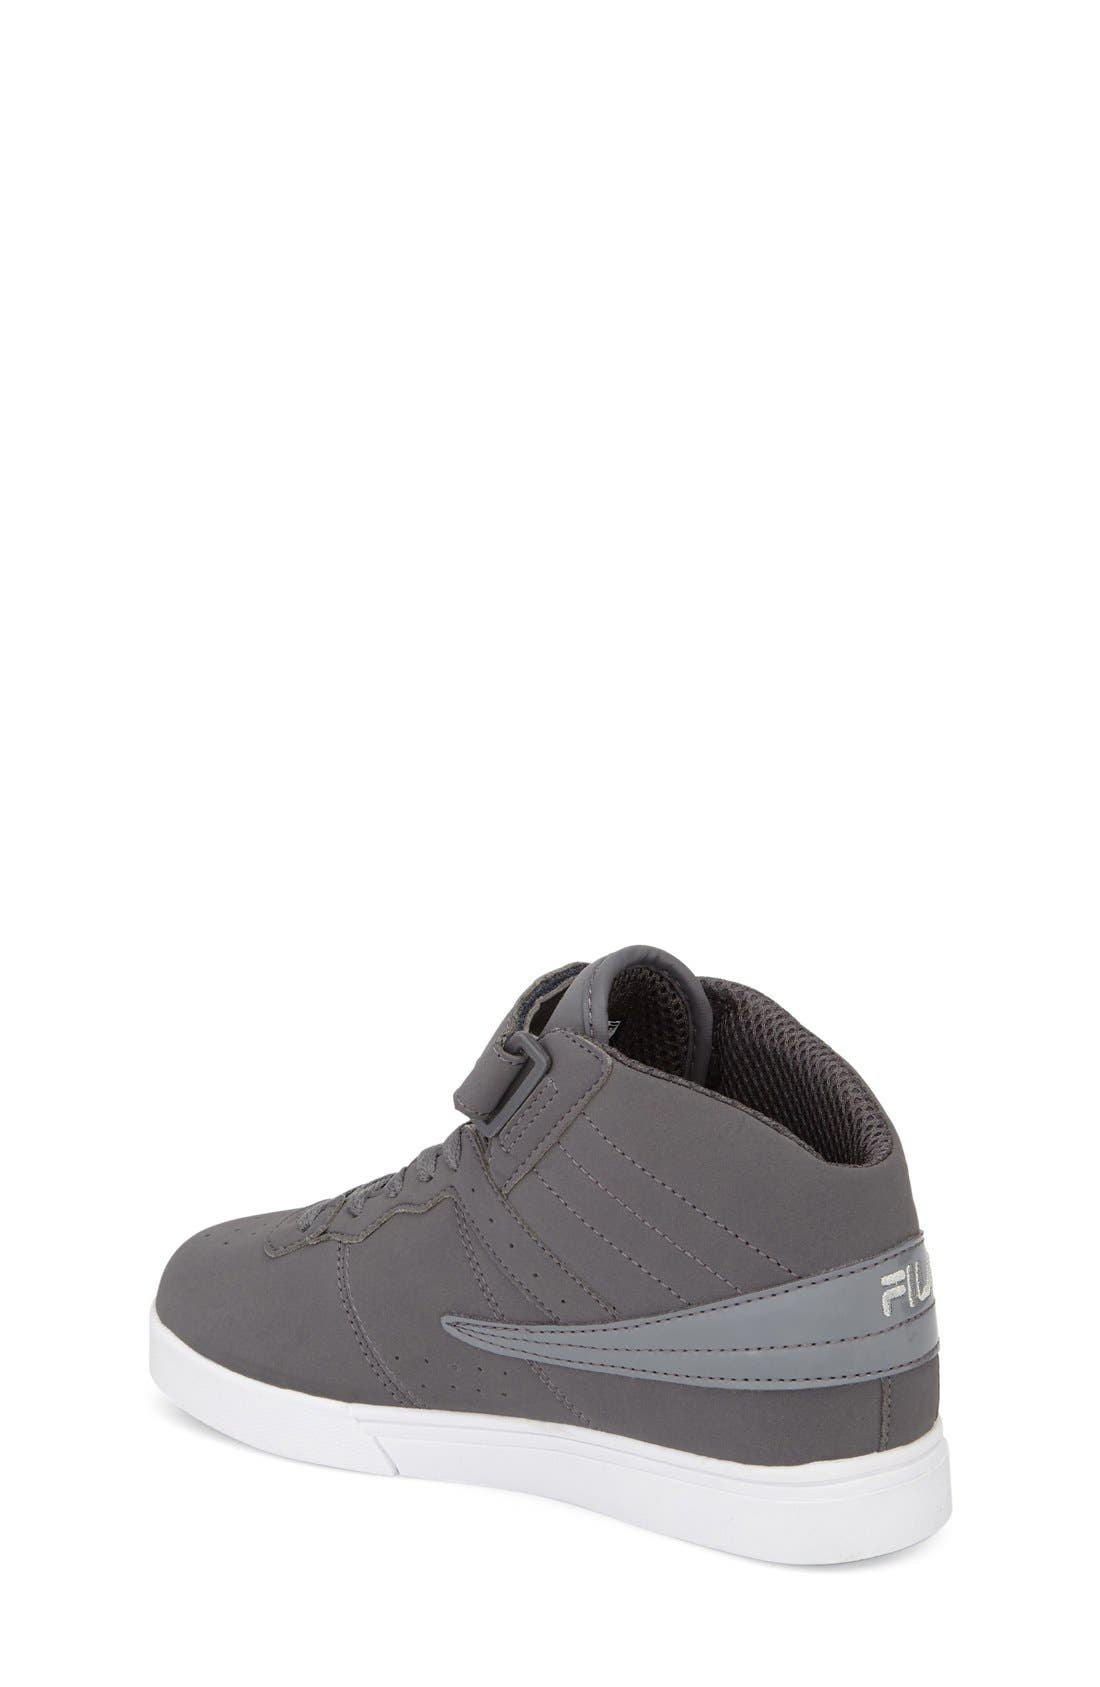 Vulc 13 High Top Sneaker,                             Alternate thumbnail 2, color,                             Pewter/ White